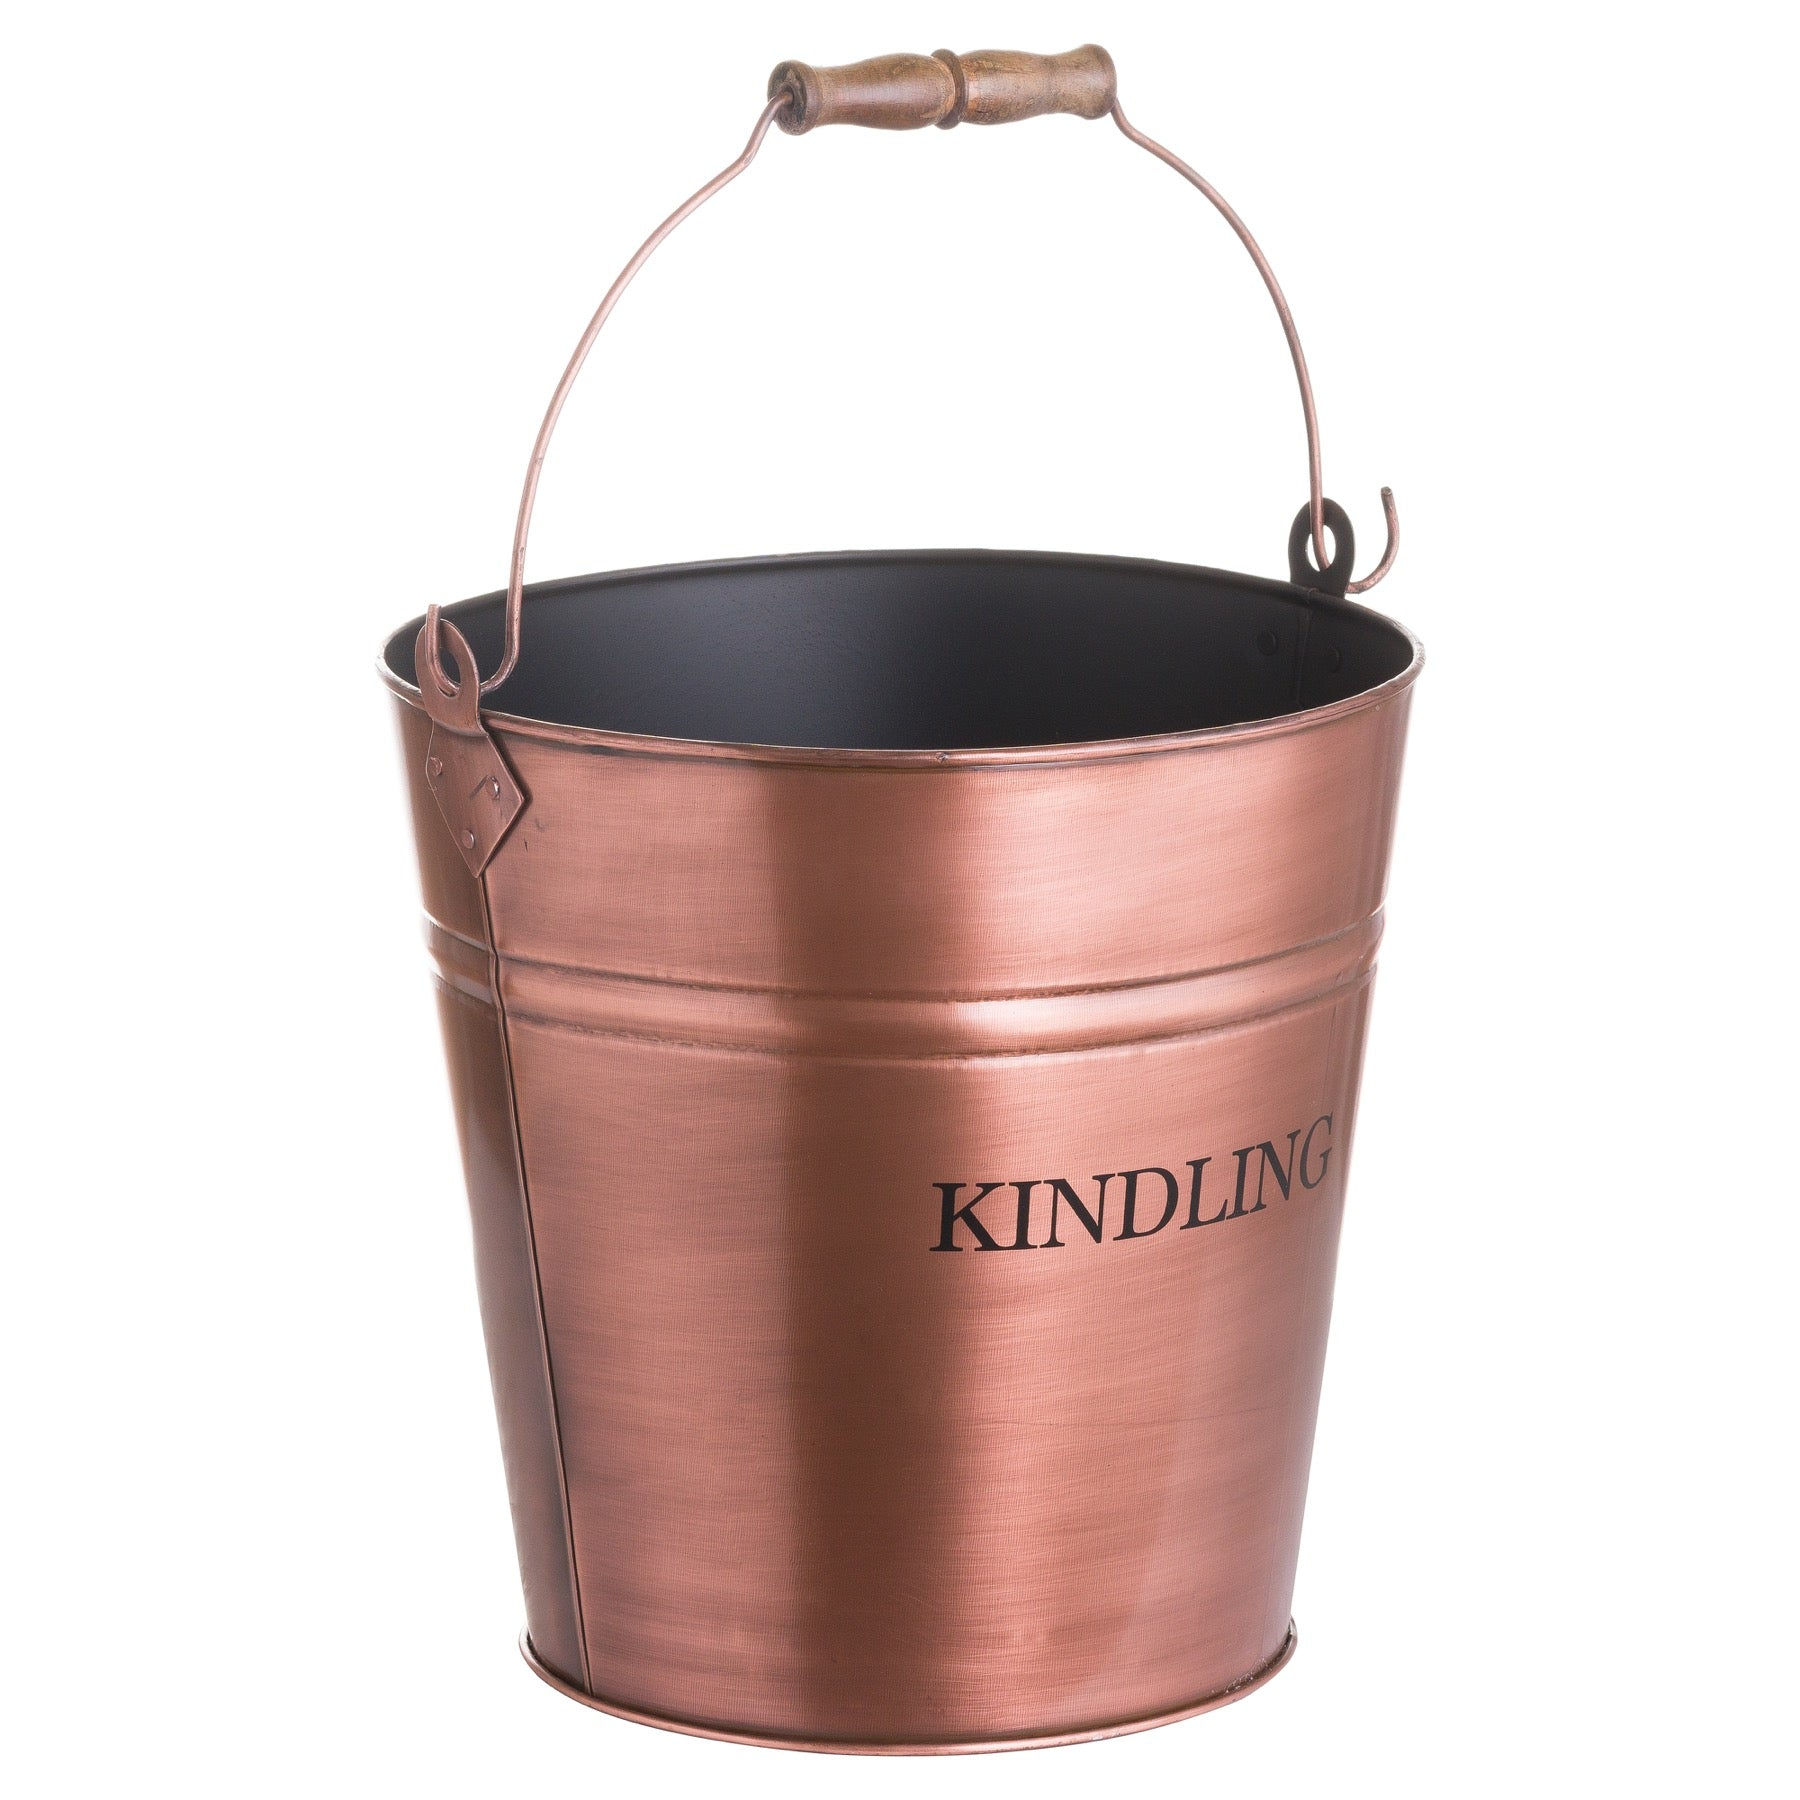 Copper Finish Kindling Bucket